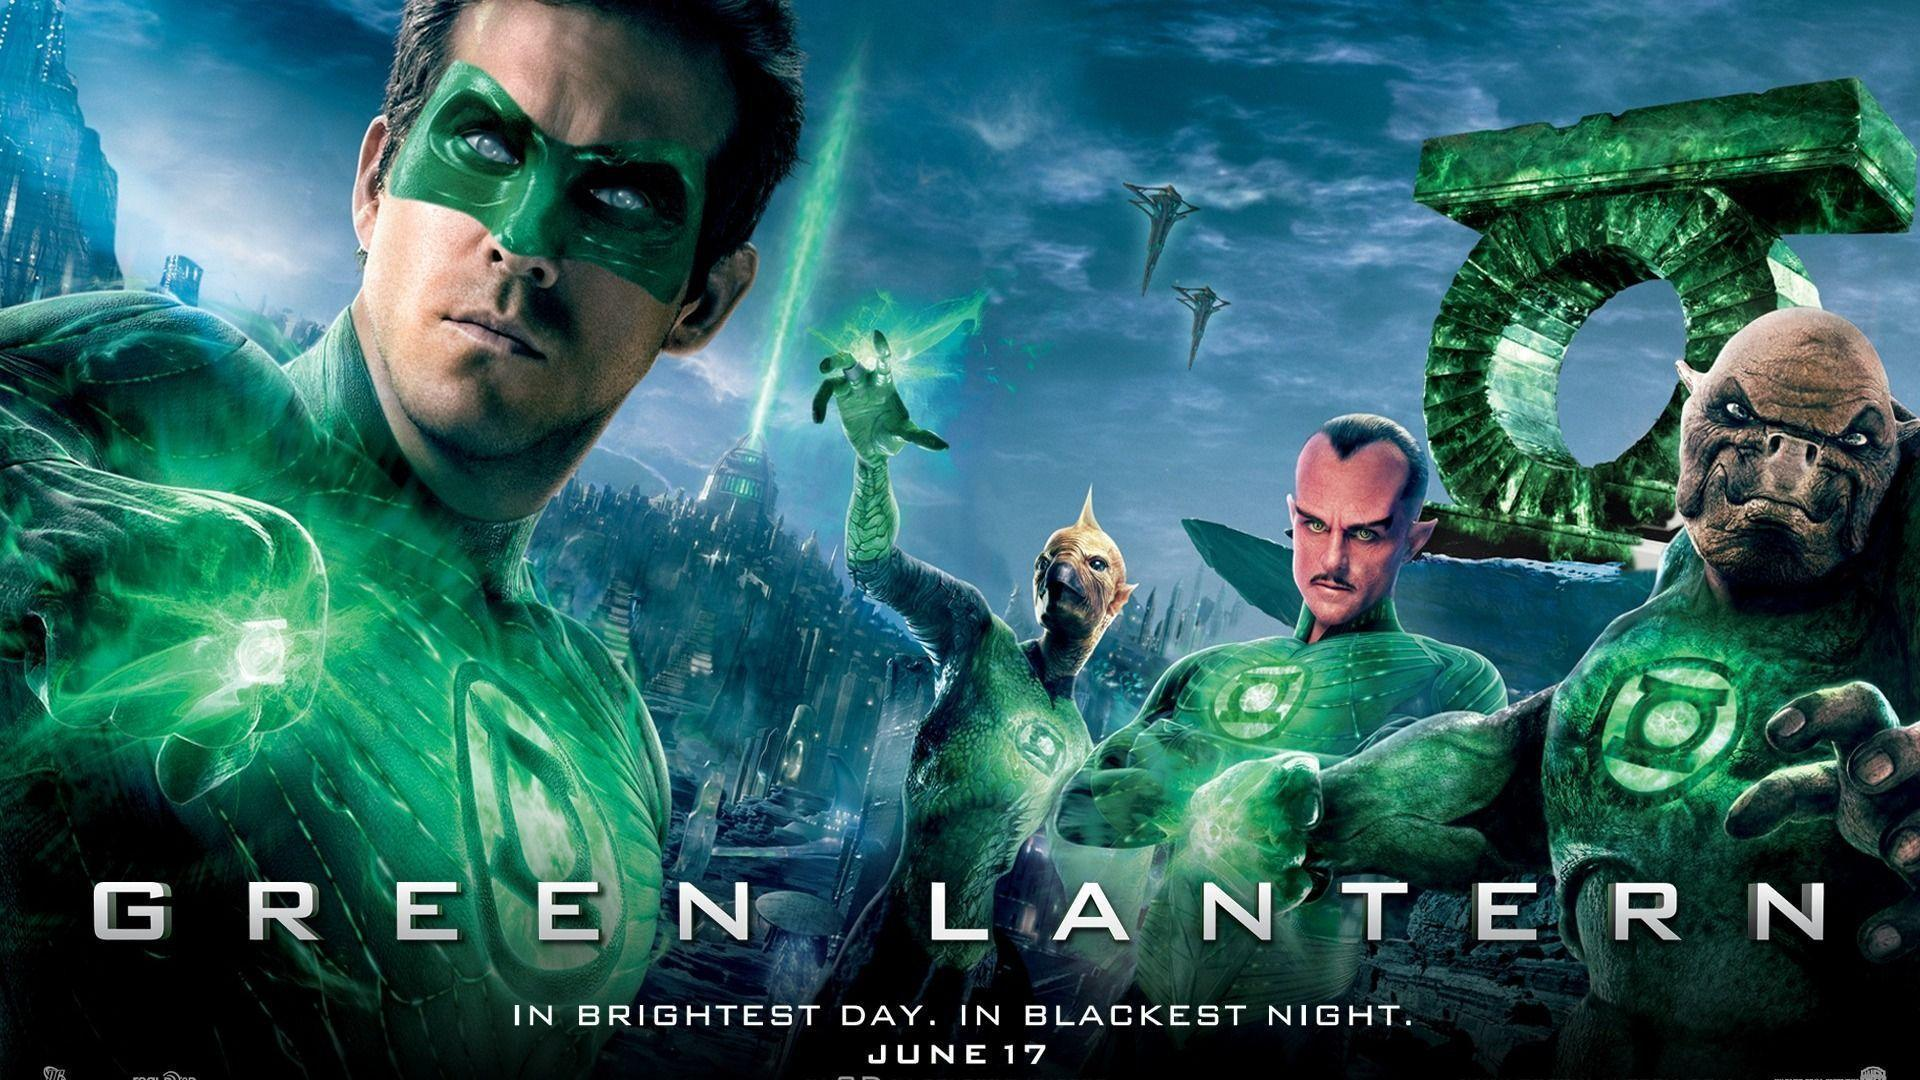 Green Lantern movie poster wallpapers